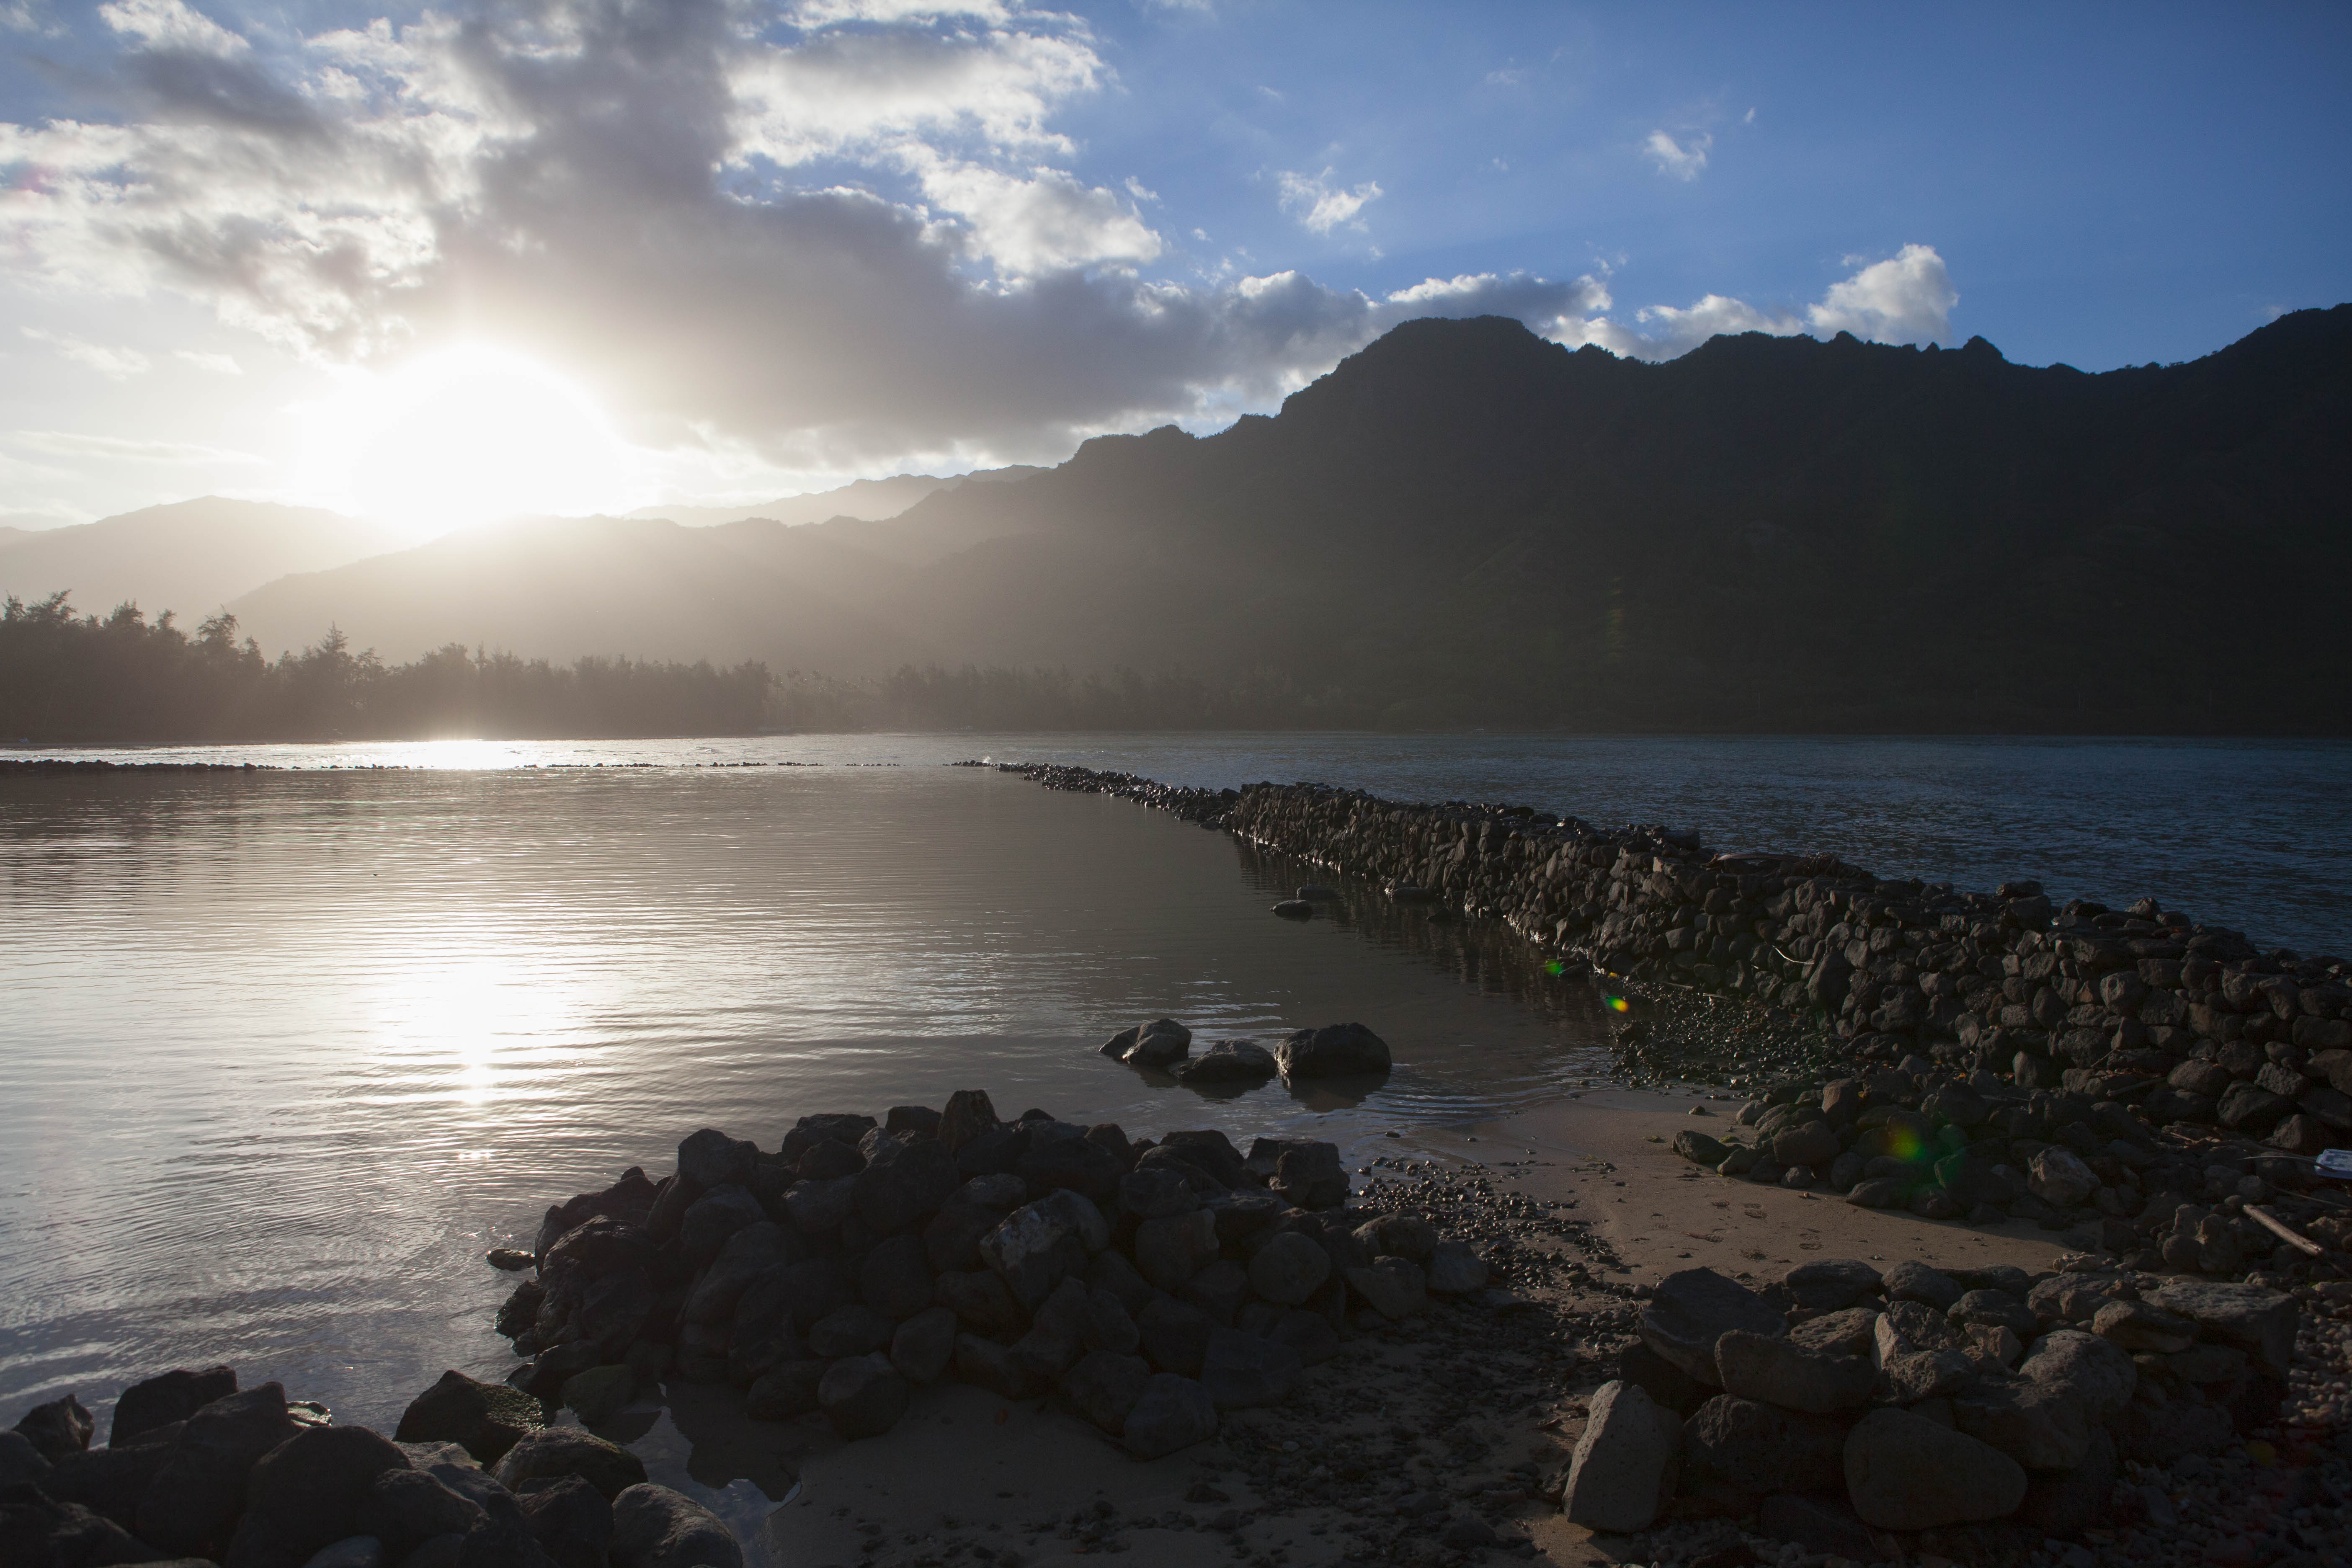 Huilua Fishpond in Kahana Bay: Explore the beauty and history of ancient Hawaii fishing practices